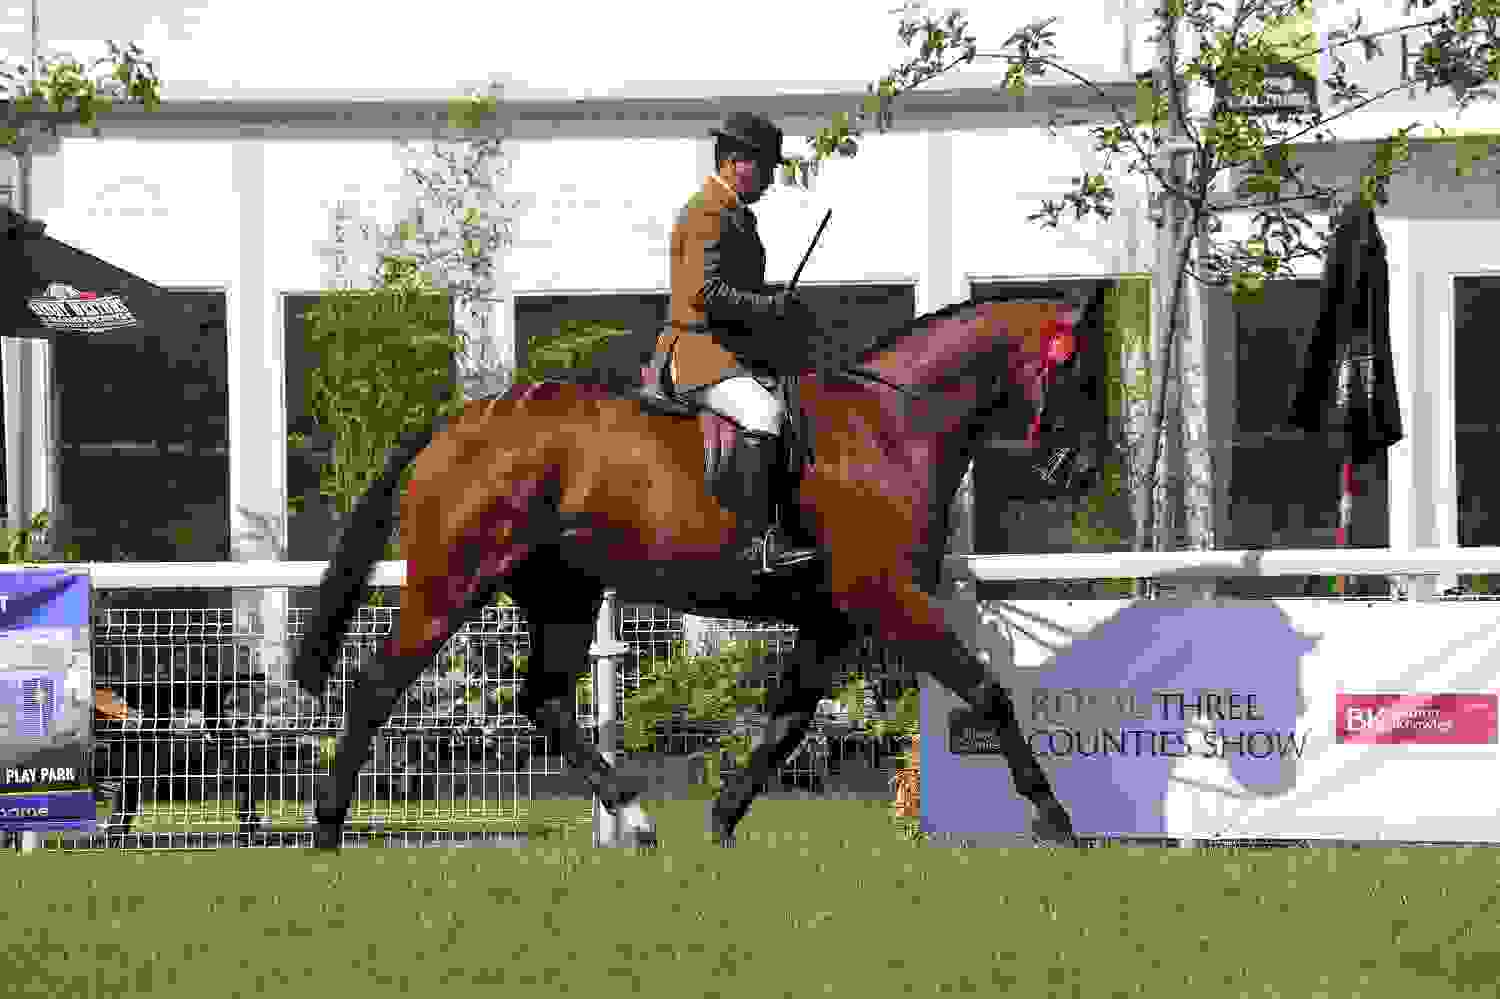 Equine Village - Main Arena - Royal Three Counties Show.jpg